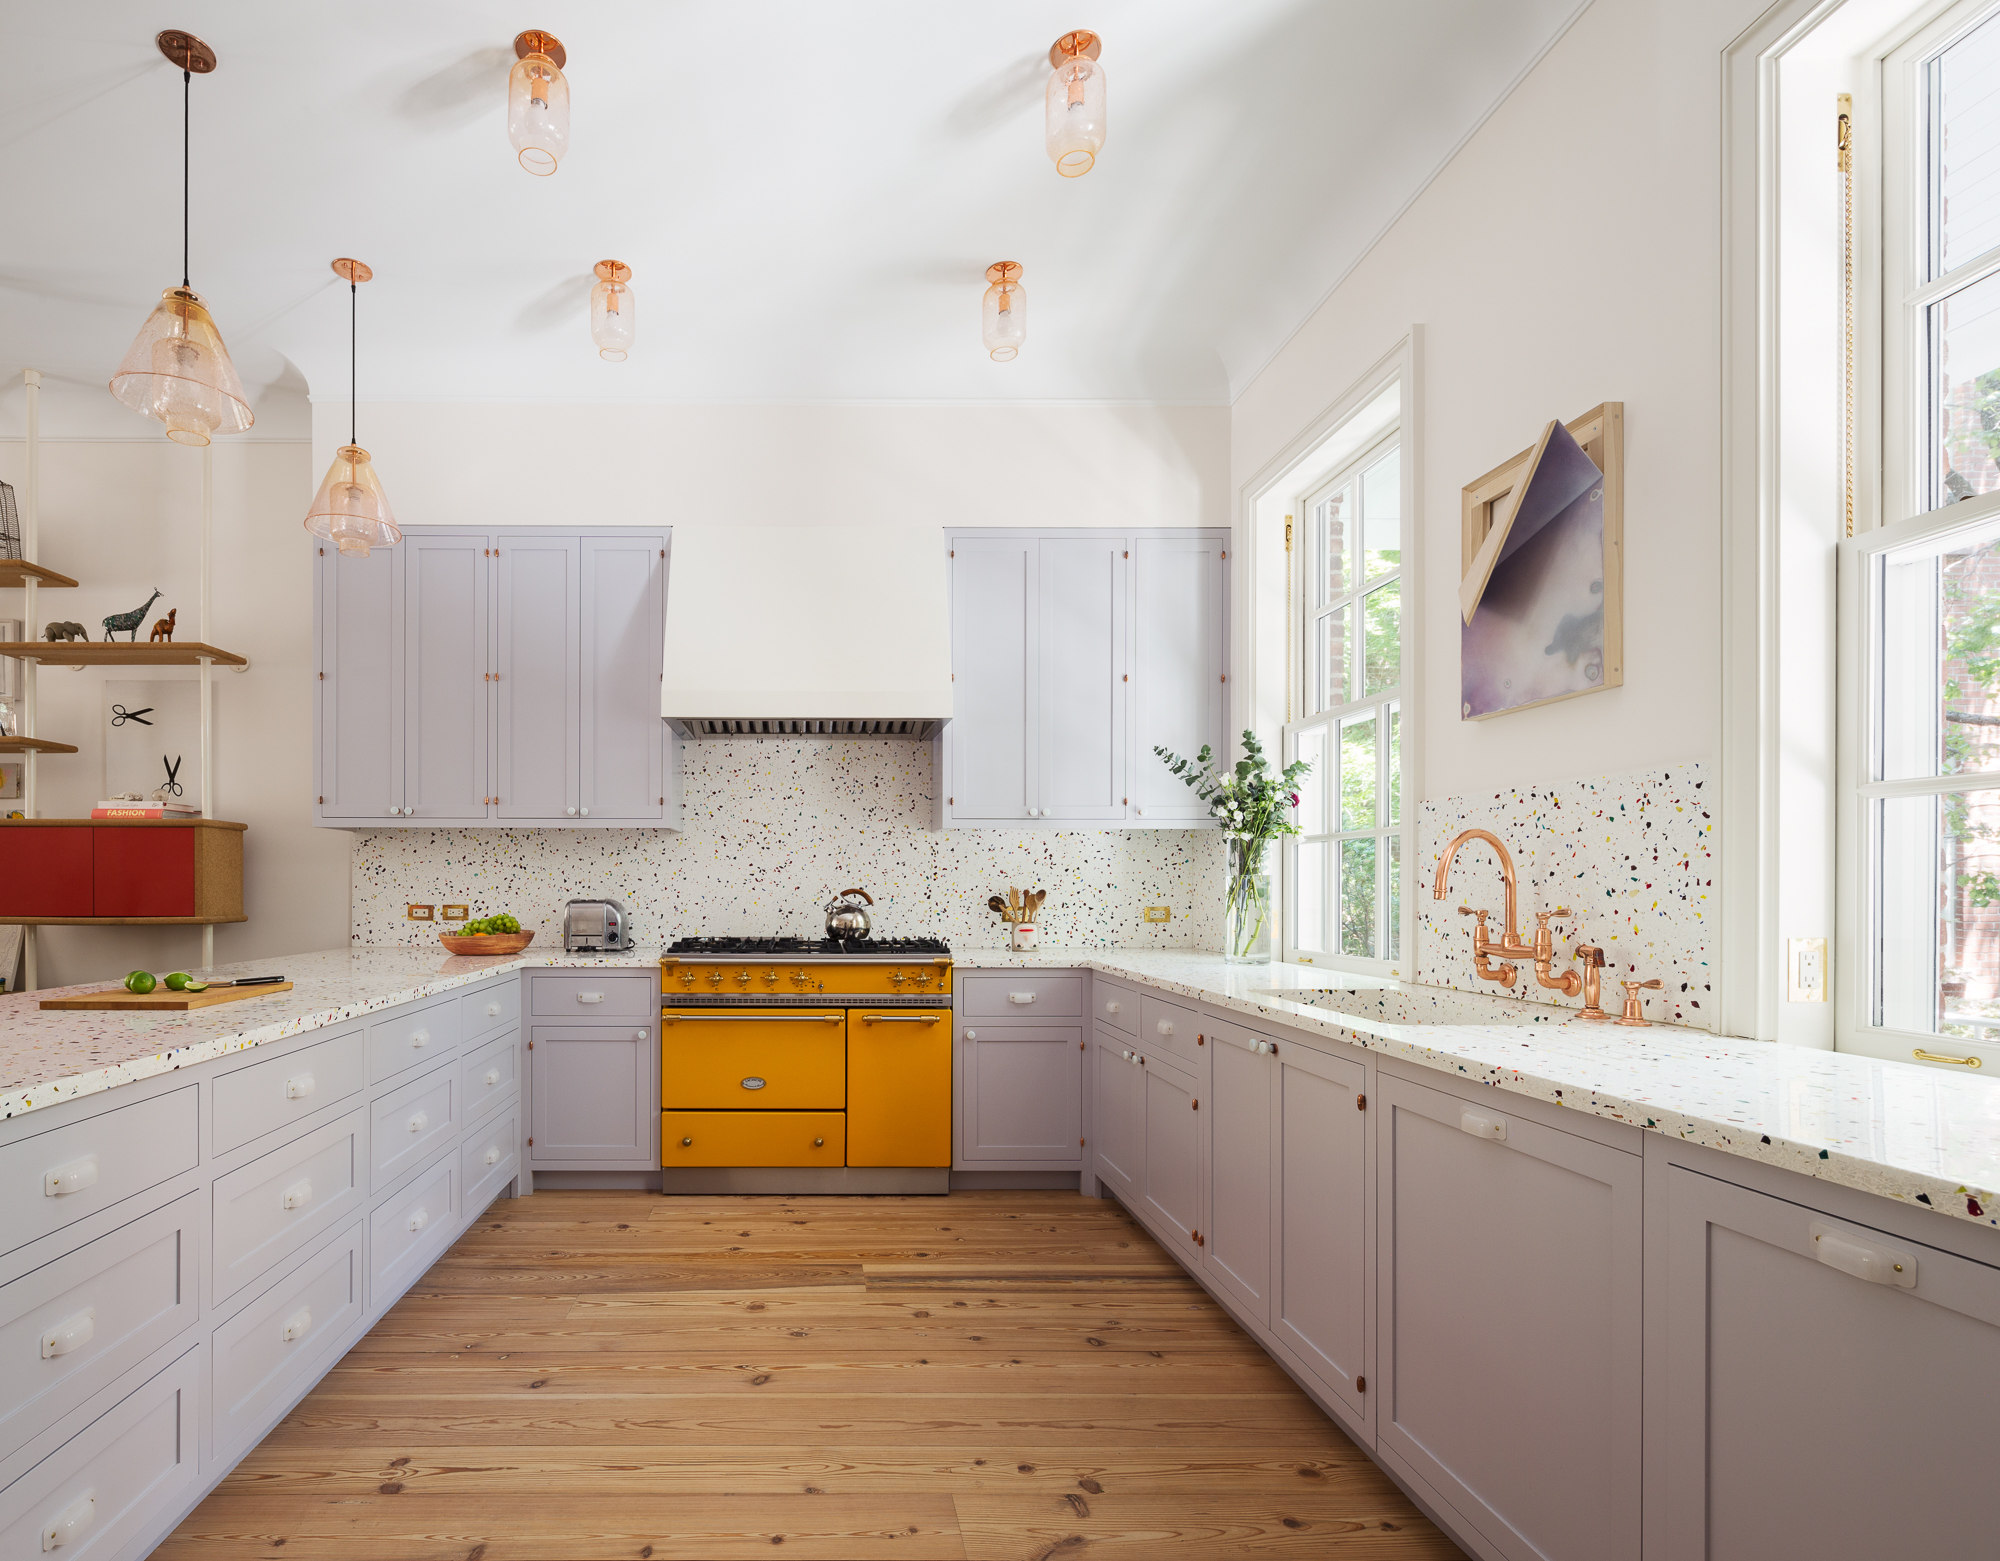 Steal This Look: A Courageously Colorful Kitchen for a New York Artist